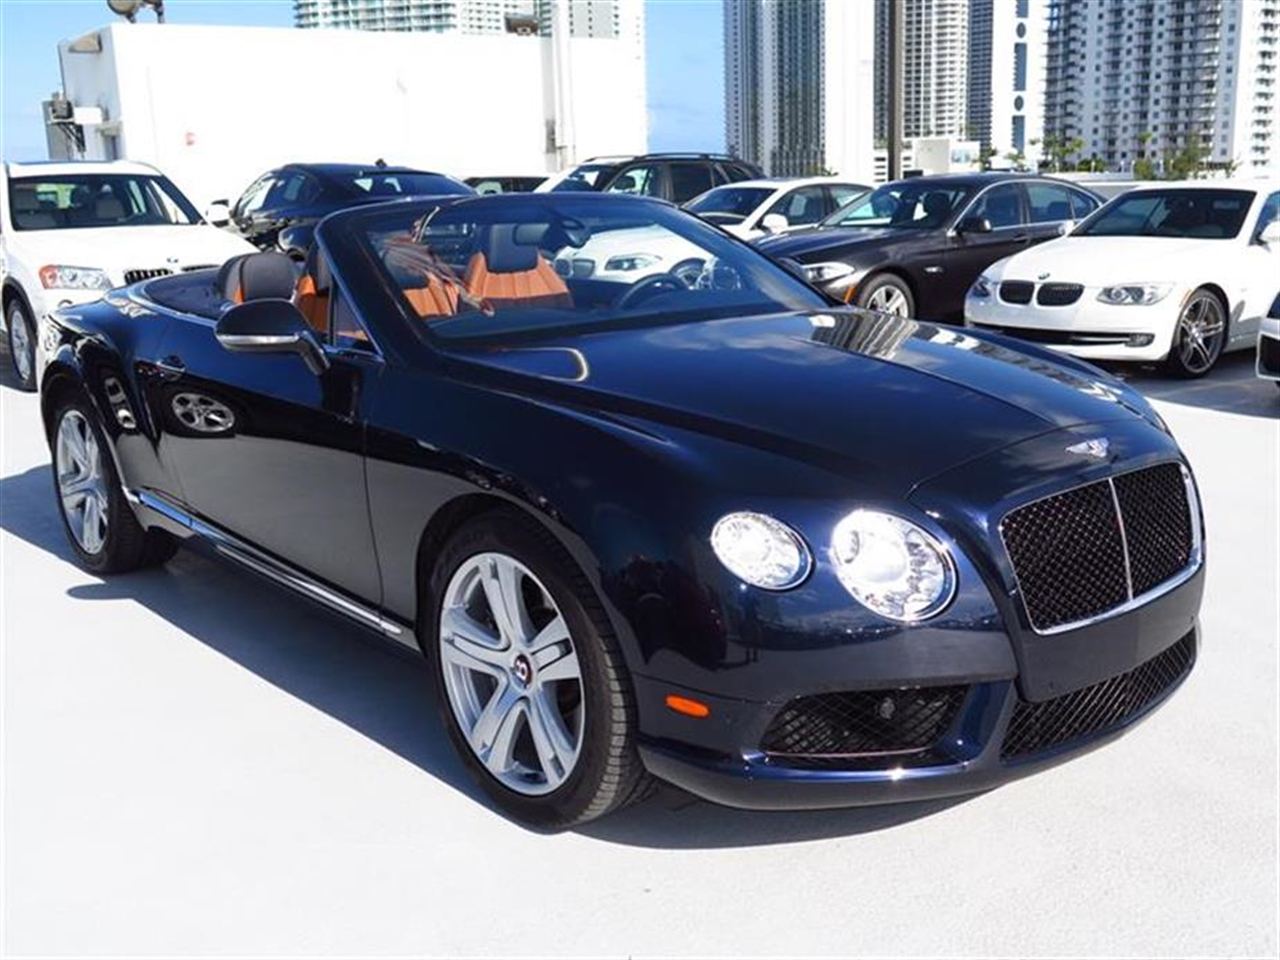 2013 BENTLEY CONTINENTAL GTC 2dr Conv 2967 miles 3-spoke monotone leather trimmed steering wheel